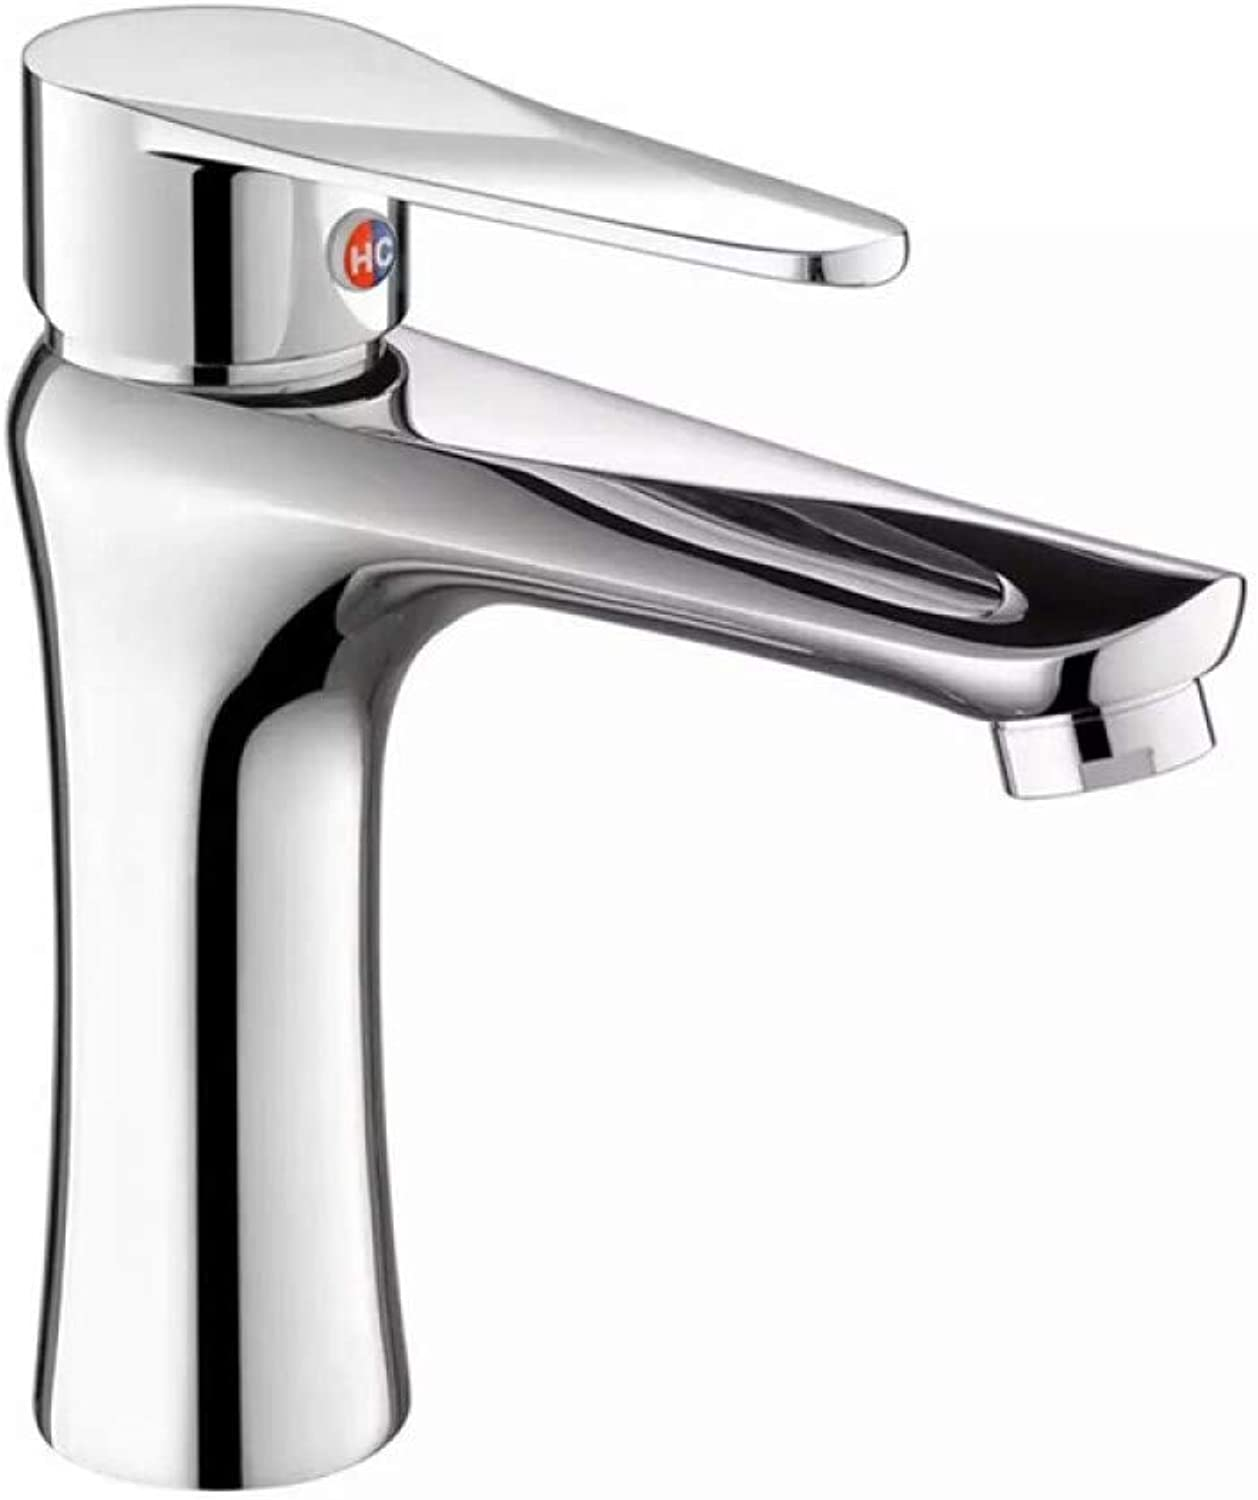 Glz Tap Faucet Full Copper Basin Faucet hot and Cold Single Hole Faucet